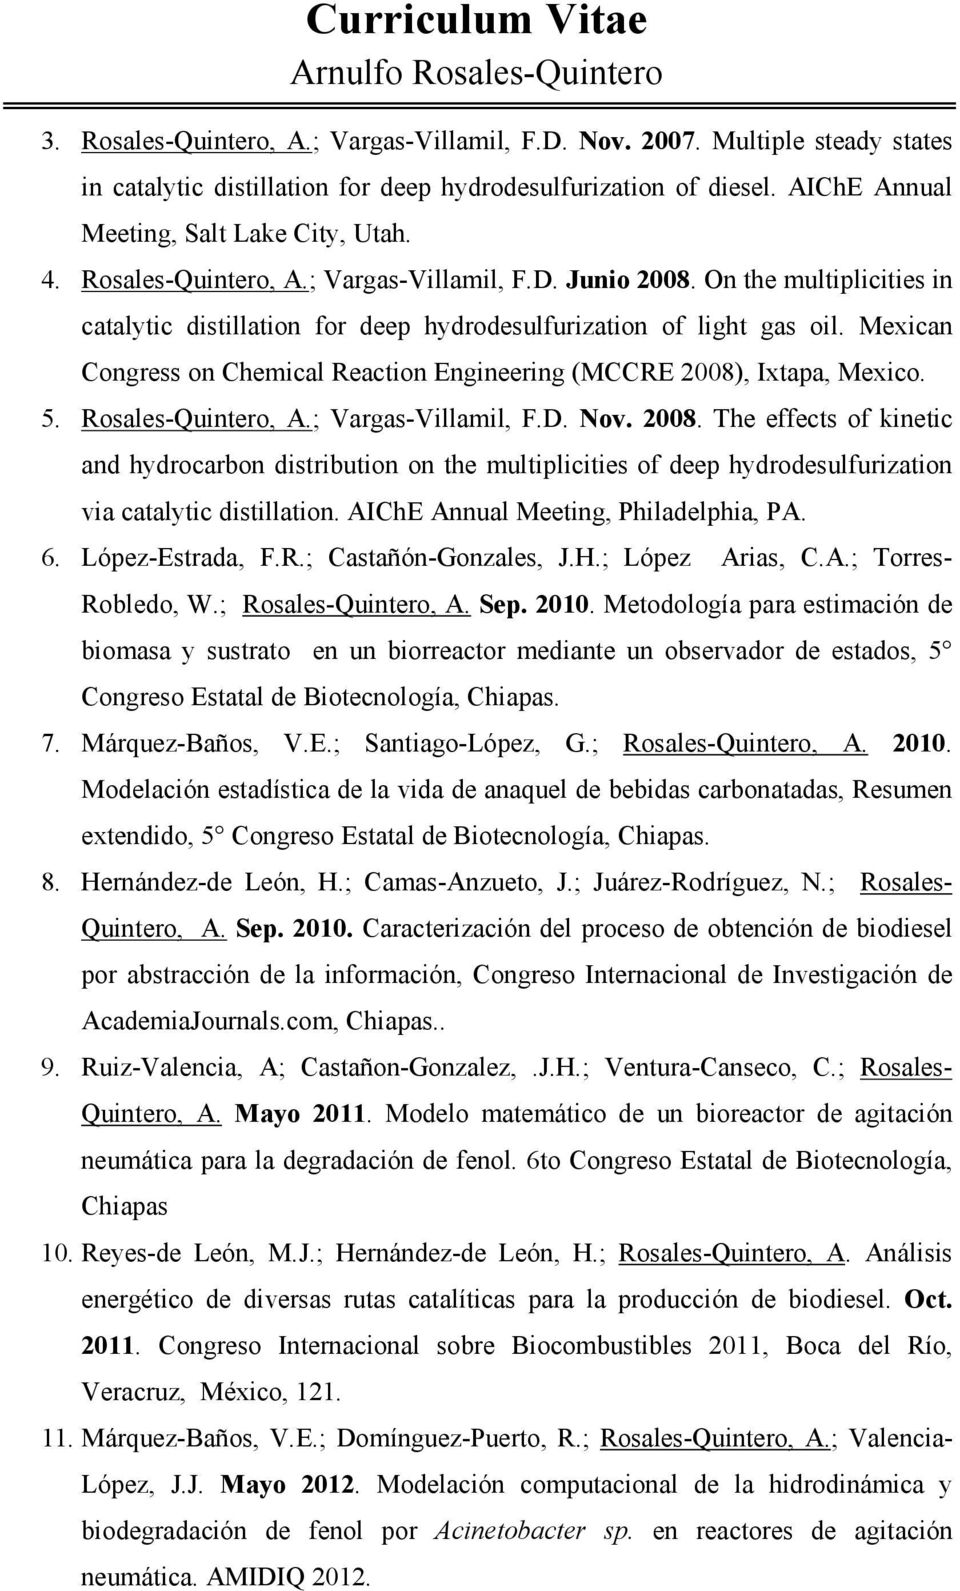 Mexican Congress on Chemical Reaction Engineering (MCCRE 2008), Ixtapa, Mexico. 5. Rosales-Quintero, A.; Vargas-Villamil, F.D. Nov. 2008. The effects of kinetic and hydrocarbon distribution on the multiplicities of deep hydrodesulfurization via catalytic distillation.